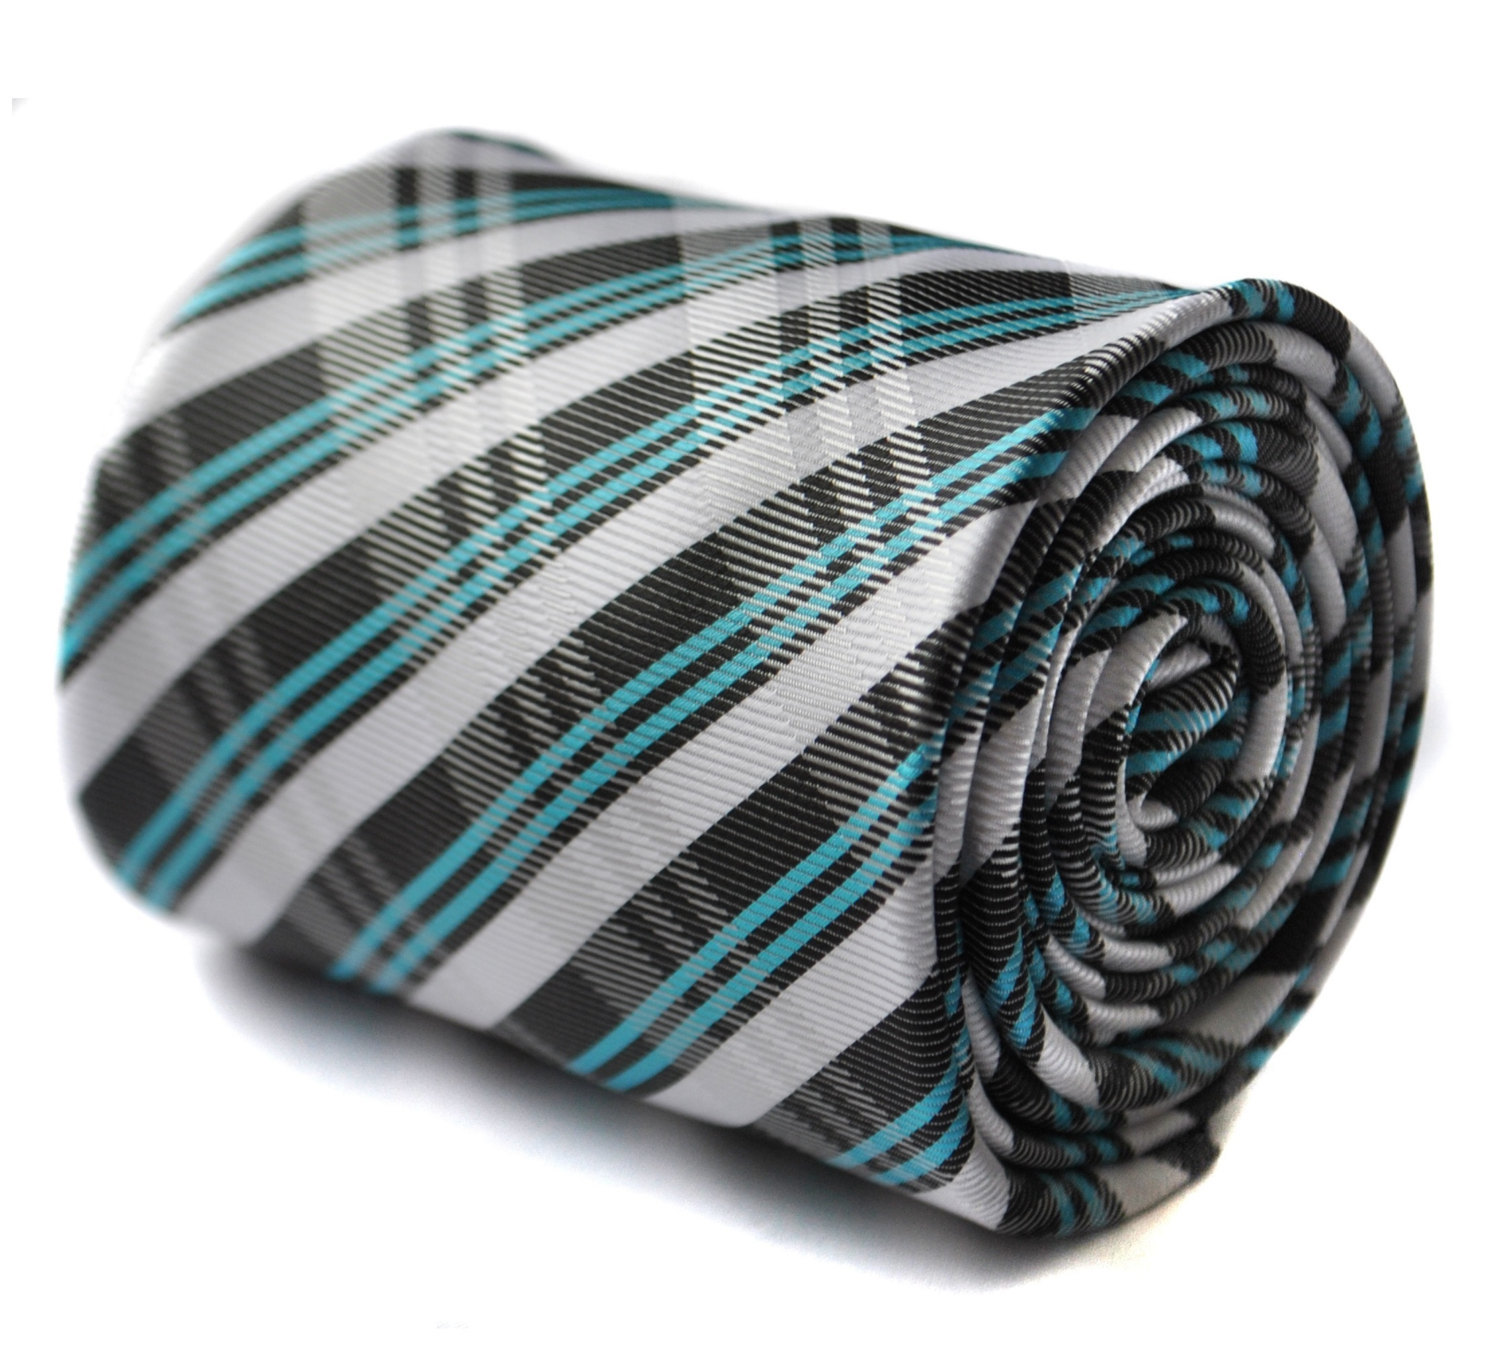 Turquoise green, black and white checkered plaid tie with floral design by Frede